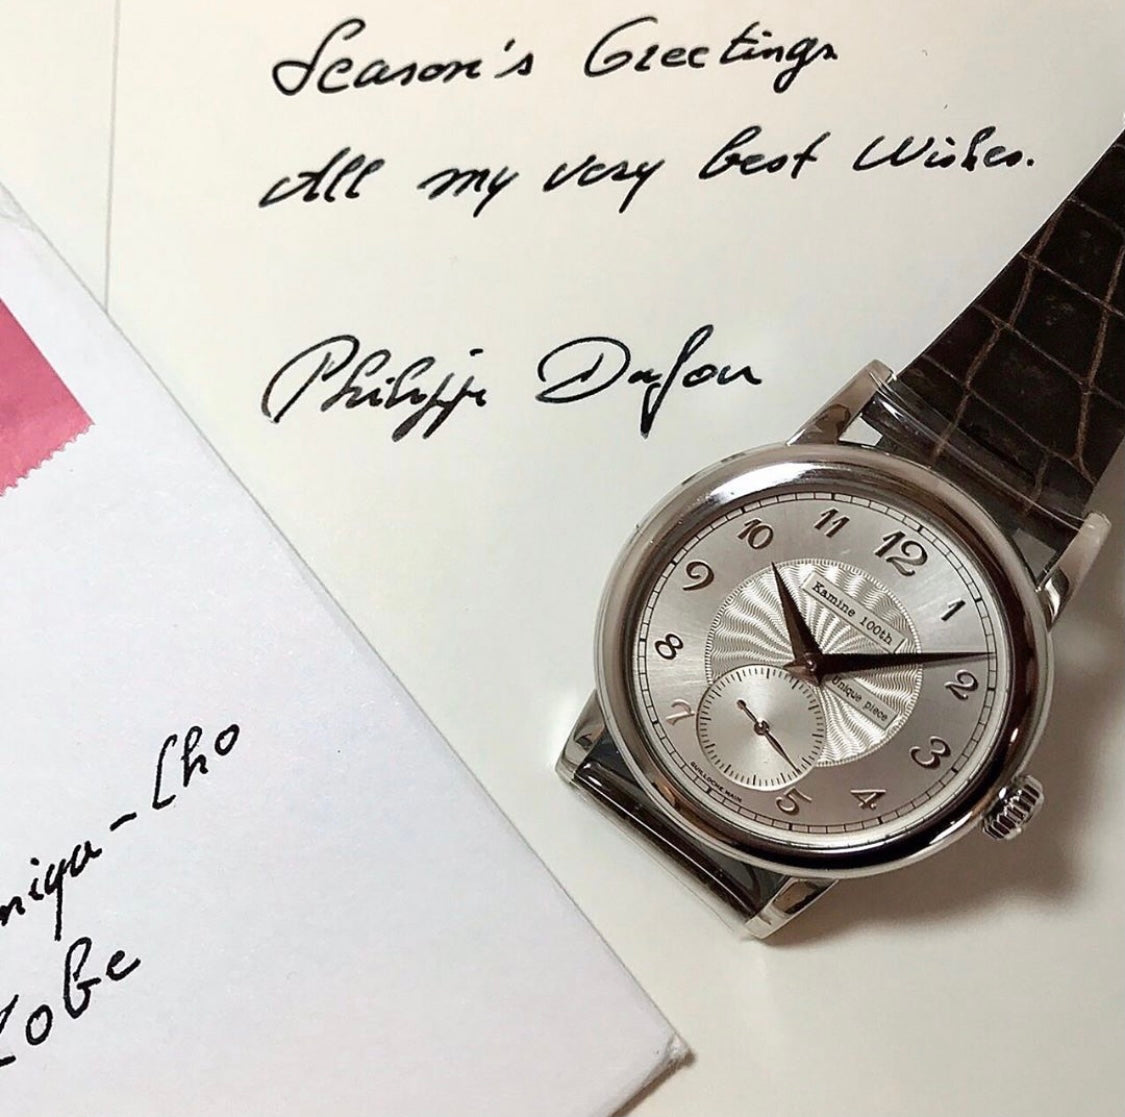 Unique Philippe Dufour Simplicity for Kamina 100th anniversary with signed note from Philippe Dufour for A Collected Man London